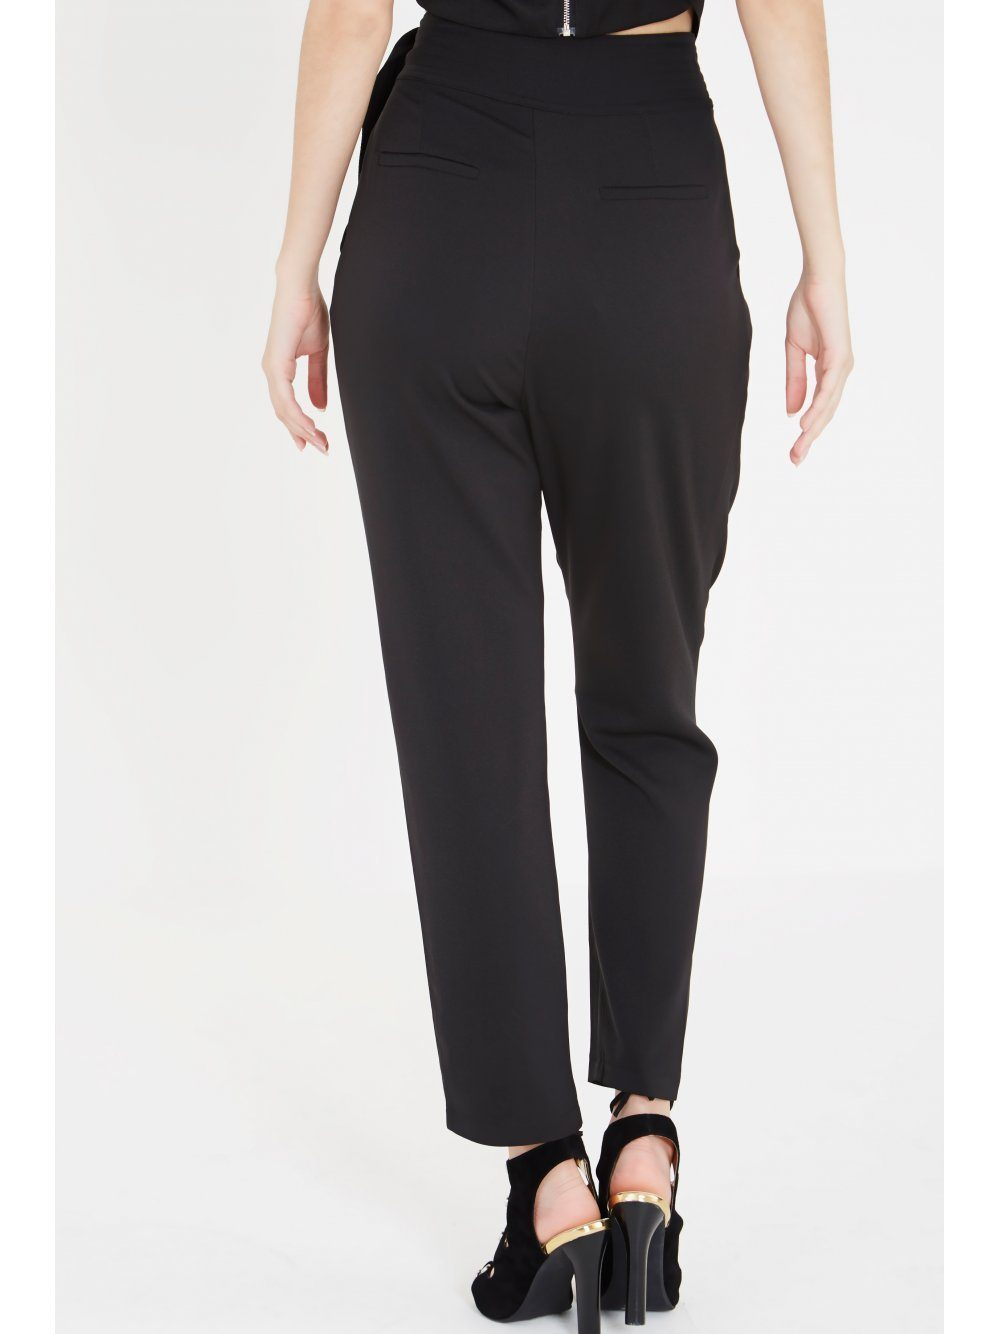 Black Sash Tie Detail Crossover Trousers